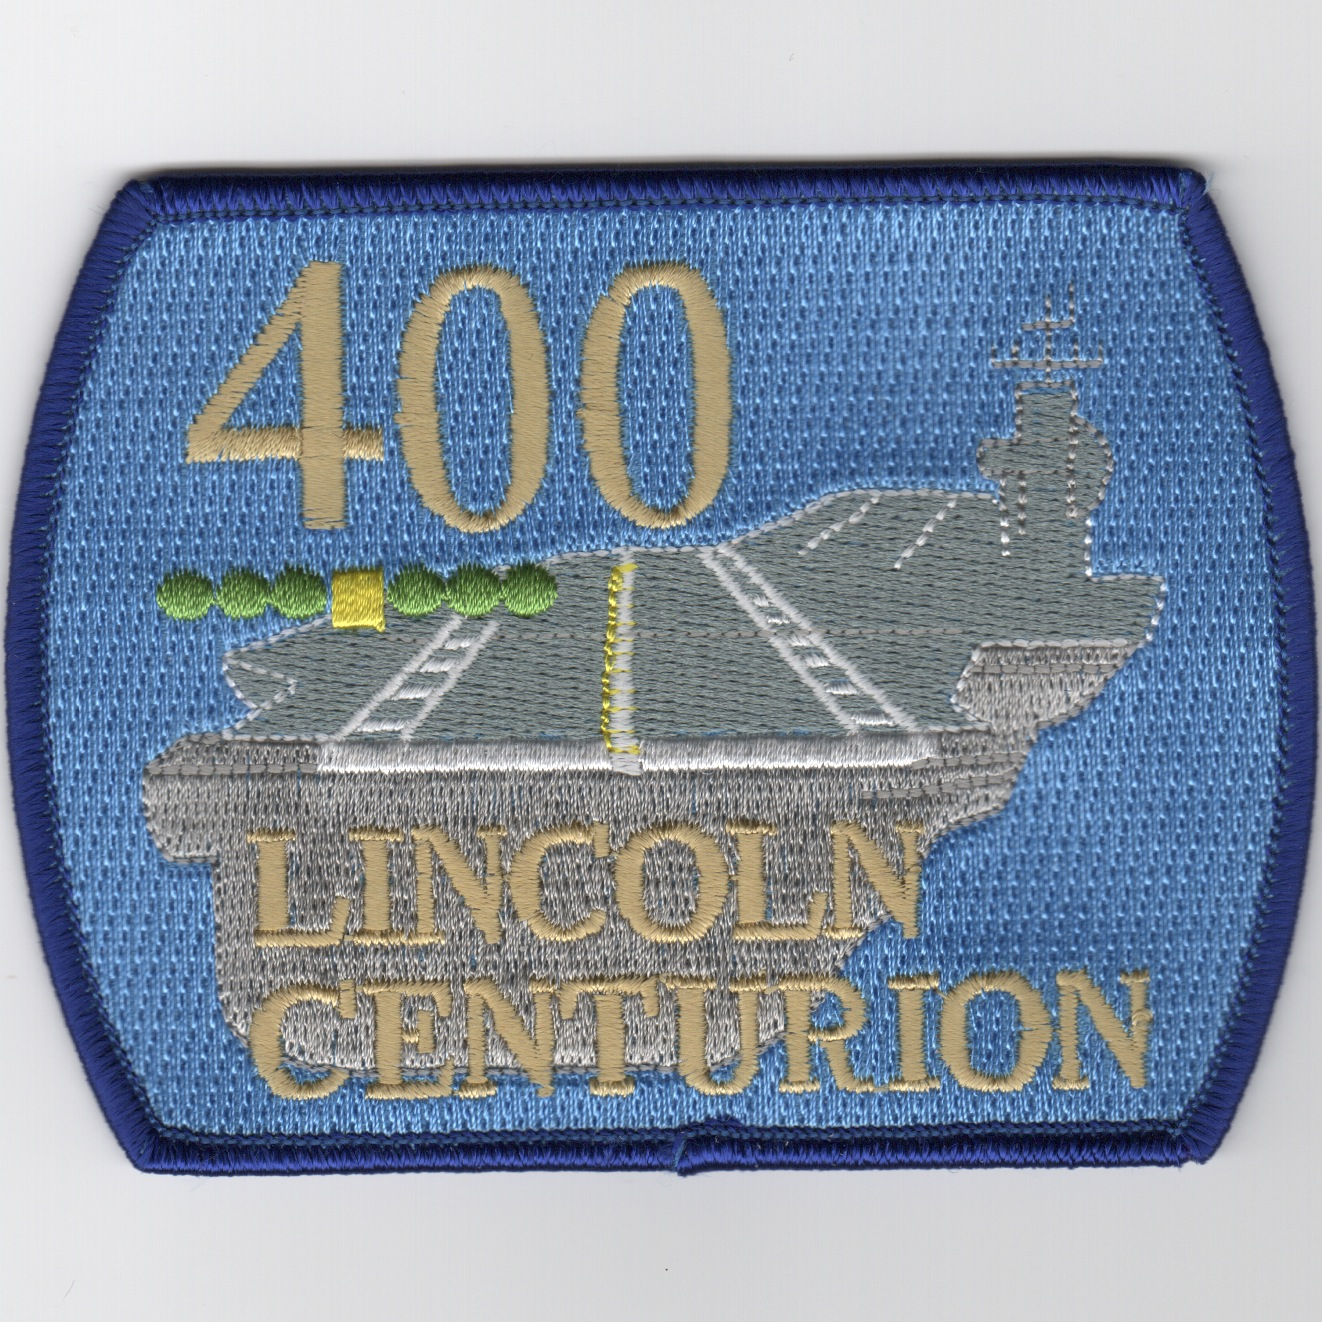 CVN-72 '400 Traps' Centurion Patch